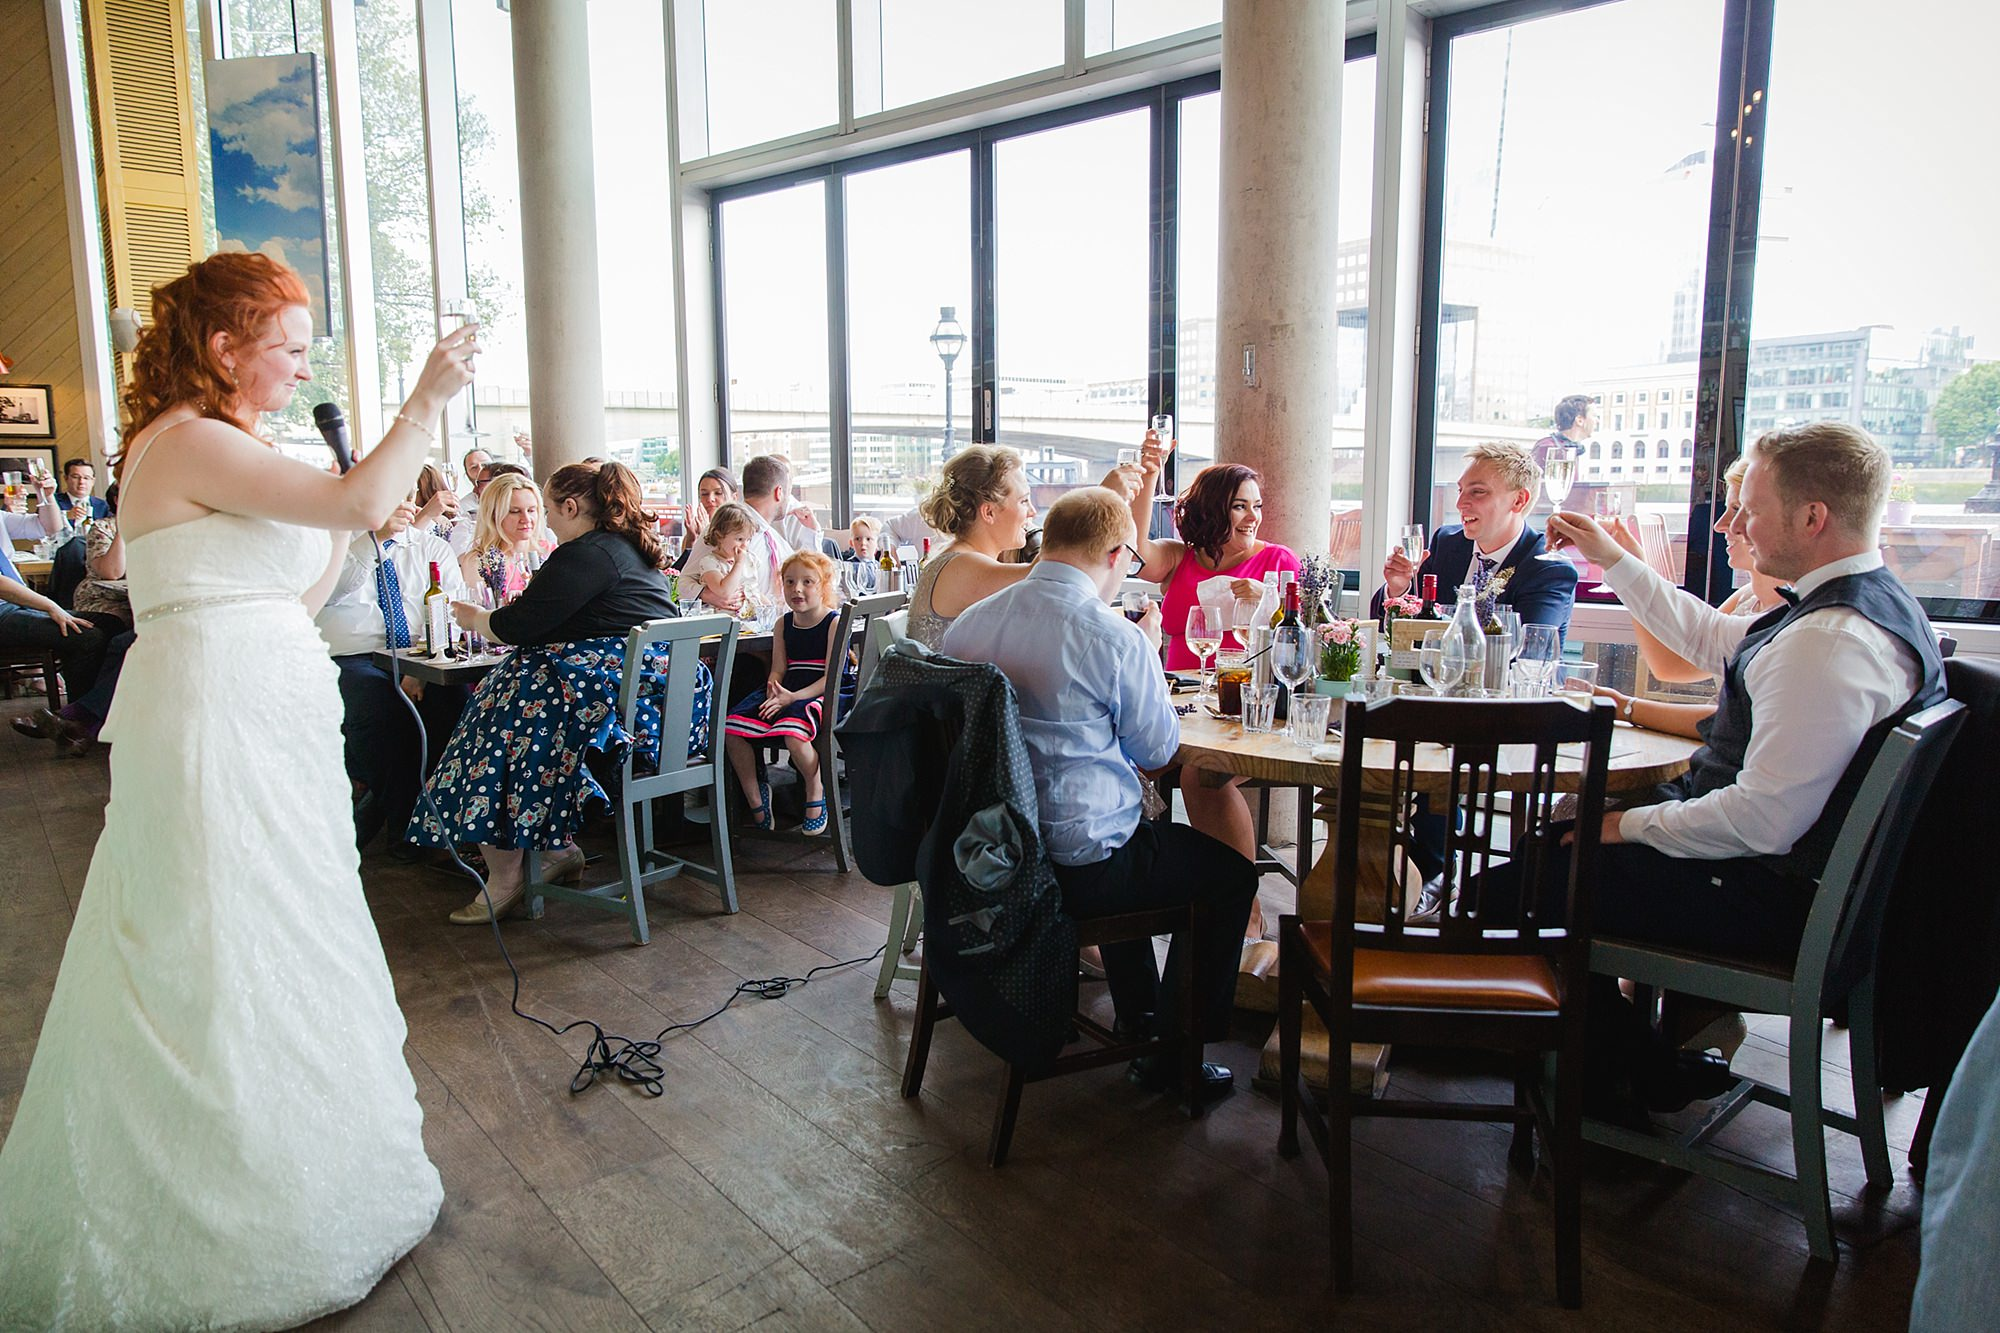 oyster shed wedding bride and guests toast together